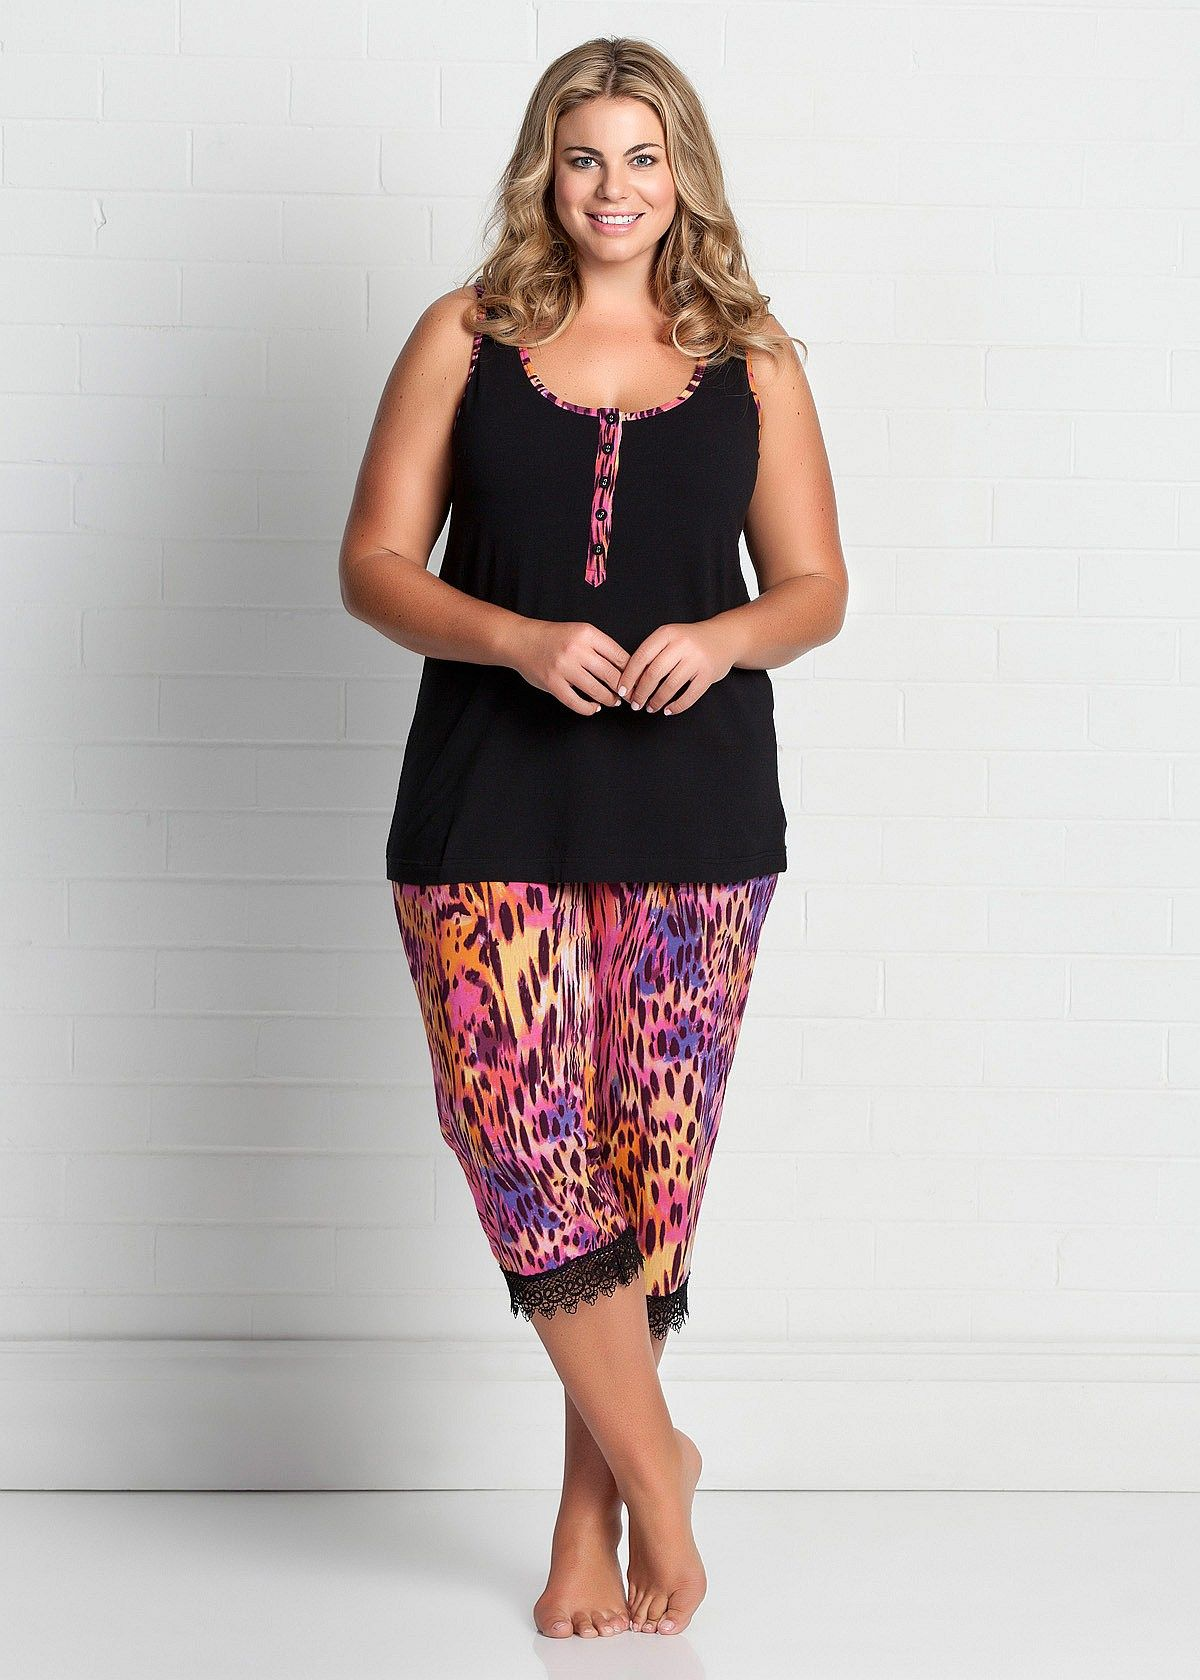 Plus Size Sleepwear for Women - Large Size Sleepwear Australia - PANTHER PJ  SET - Virtu 6f02cefe6